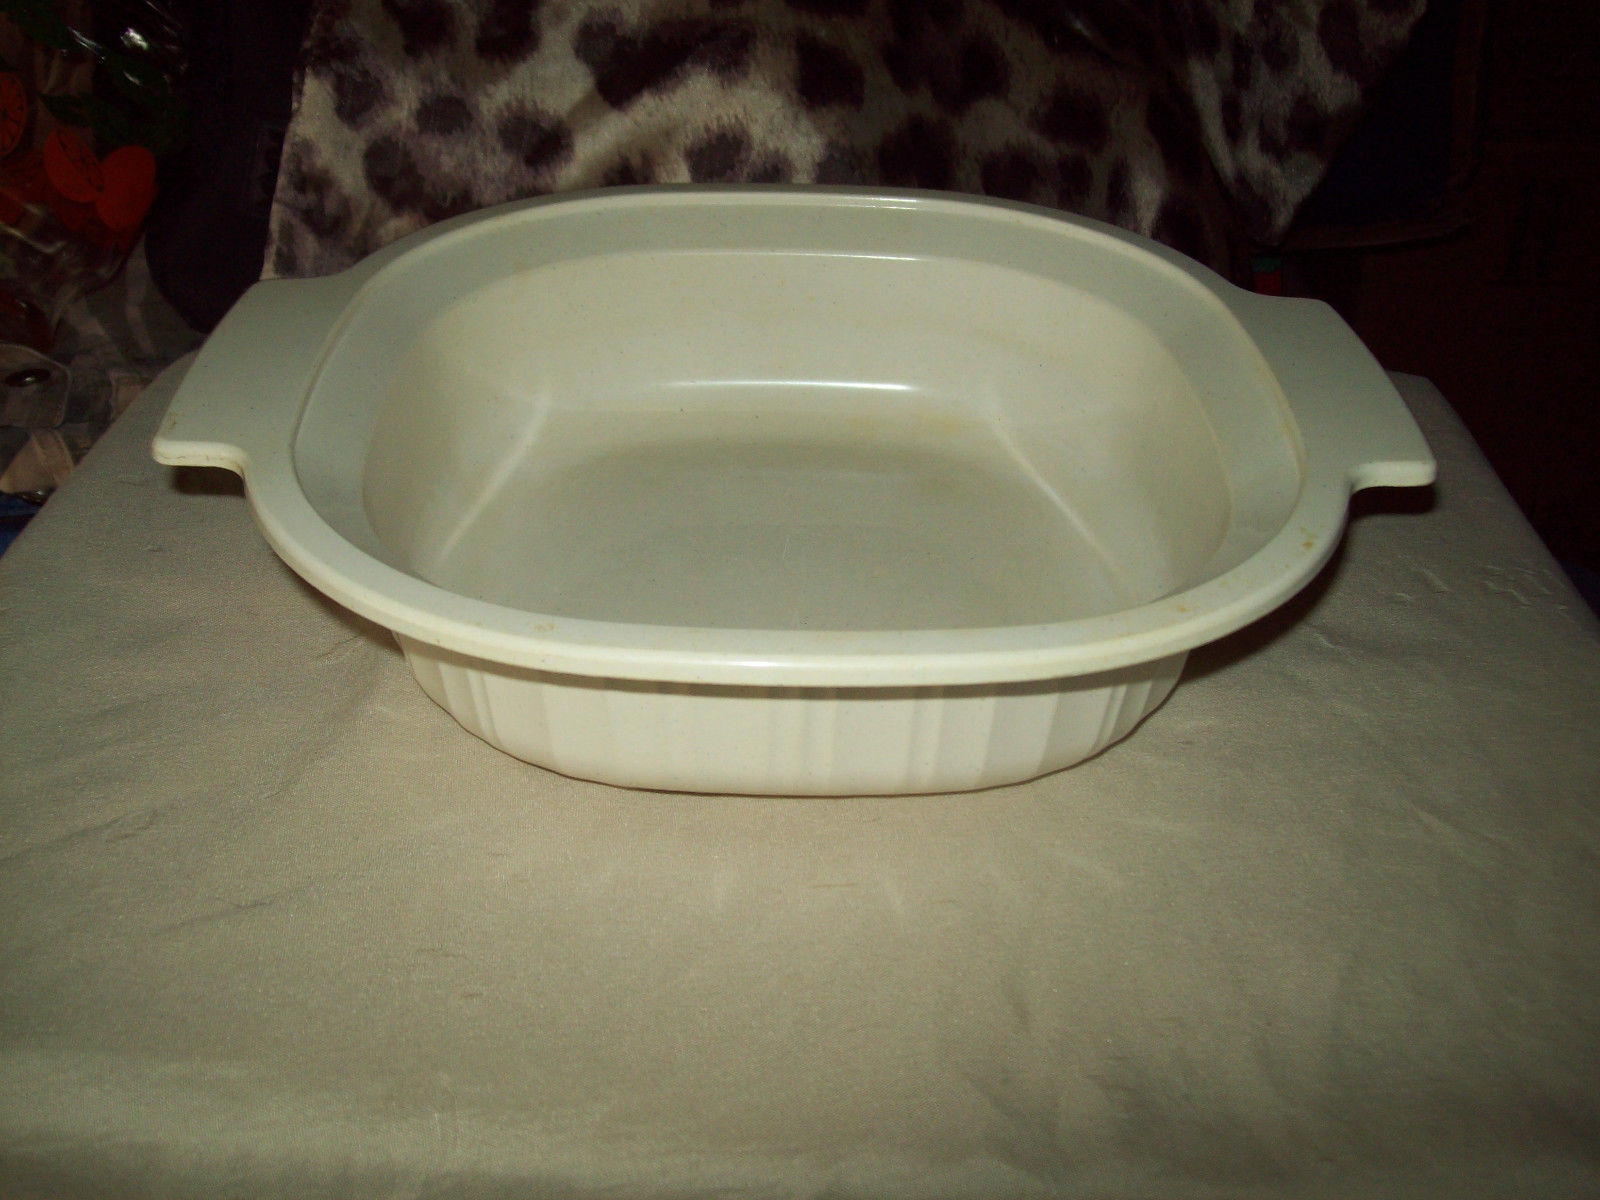 RUBBERMAID MICROWAVE MICROWARE COOKWARE BOWL 1 Quart W/ LID AND LARGE BOWL 3 PCS